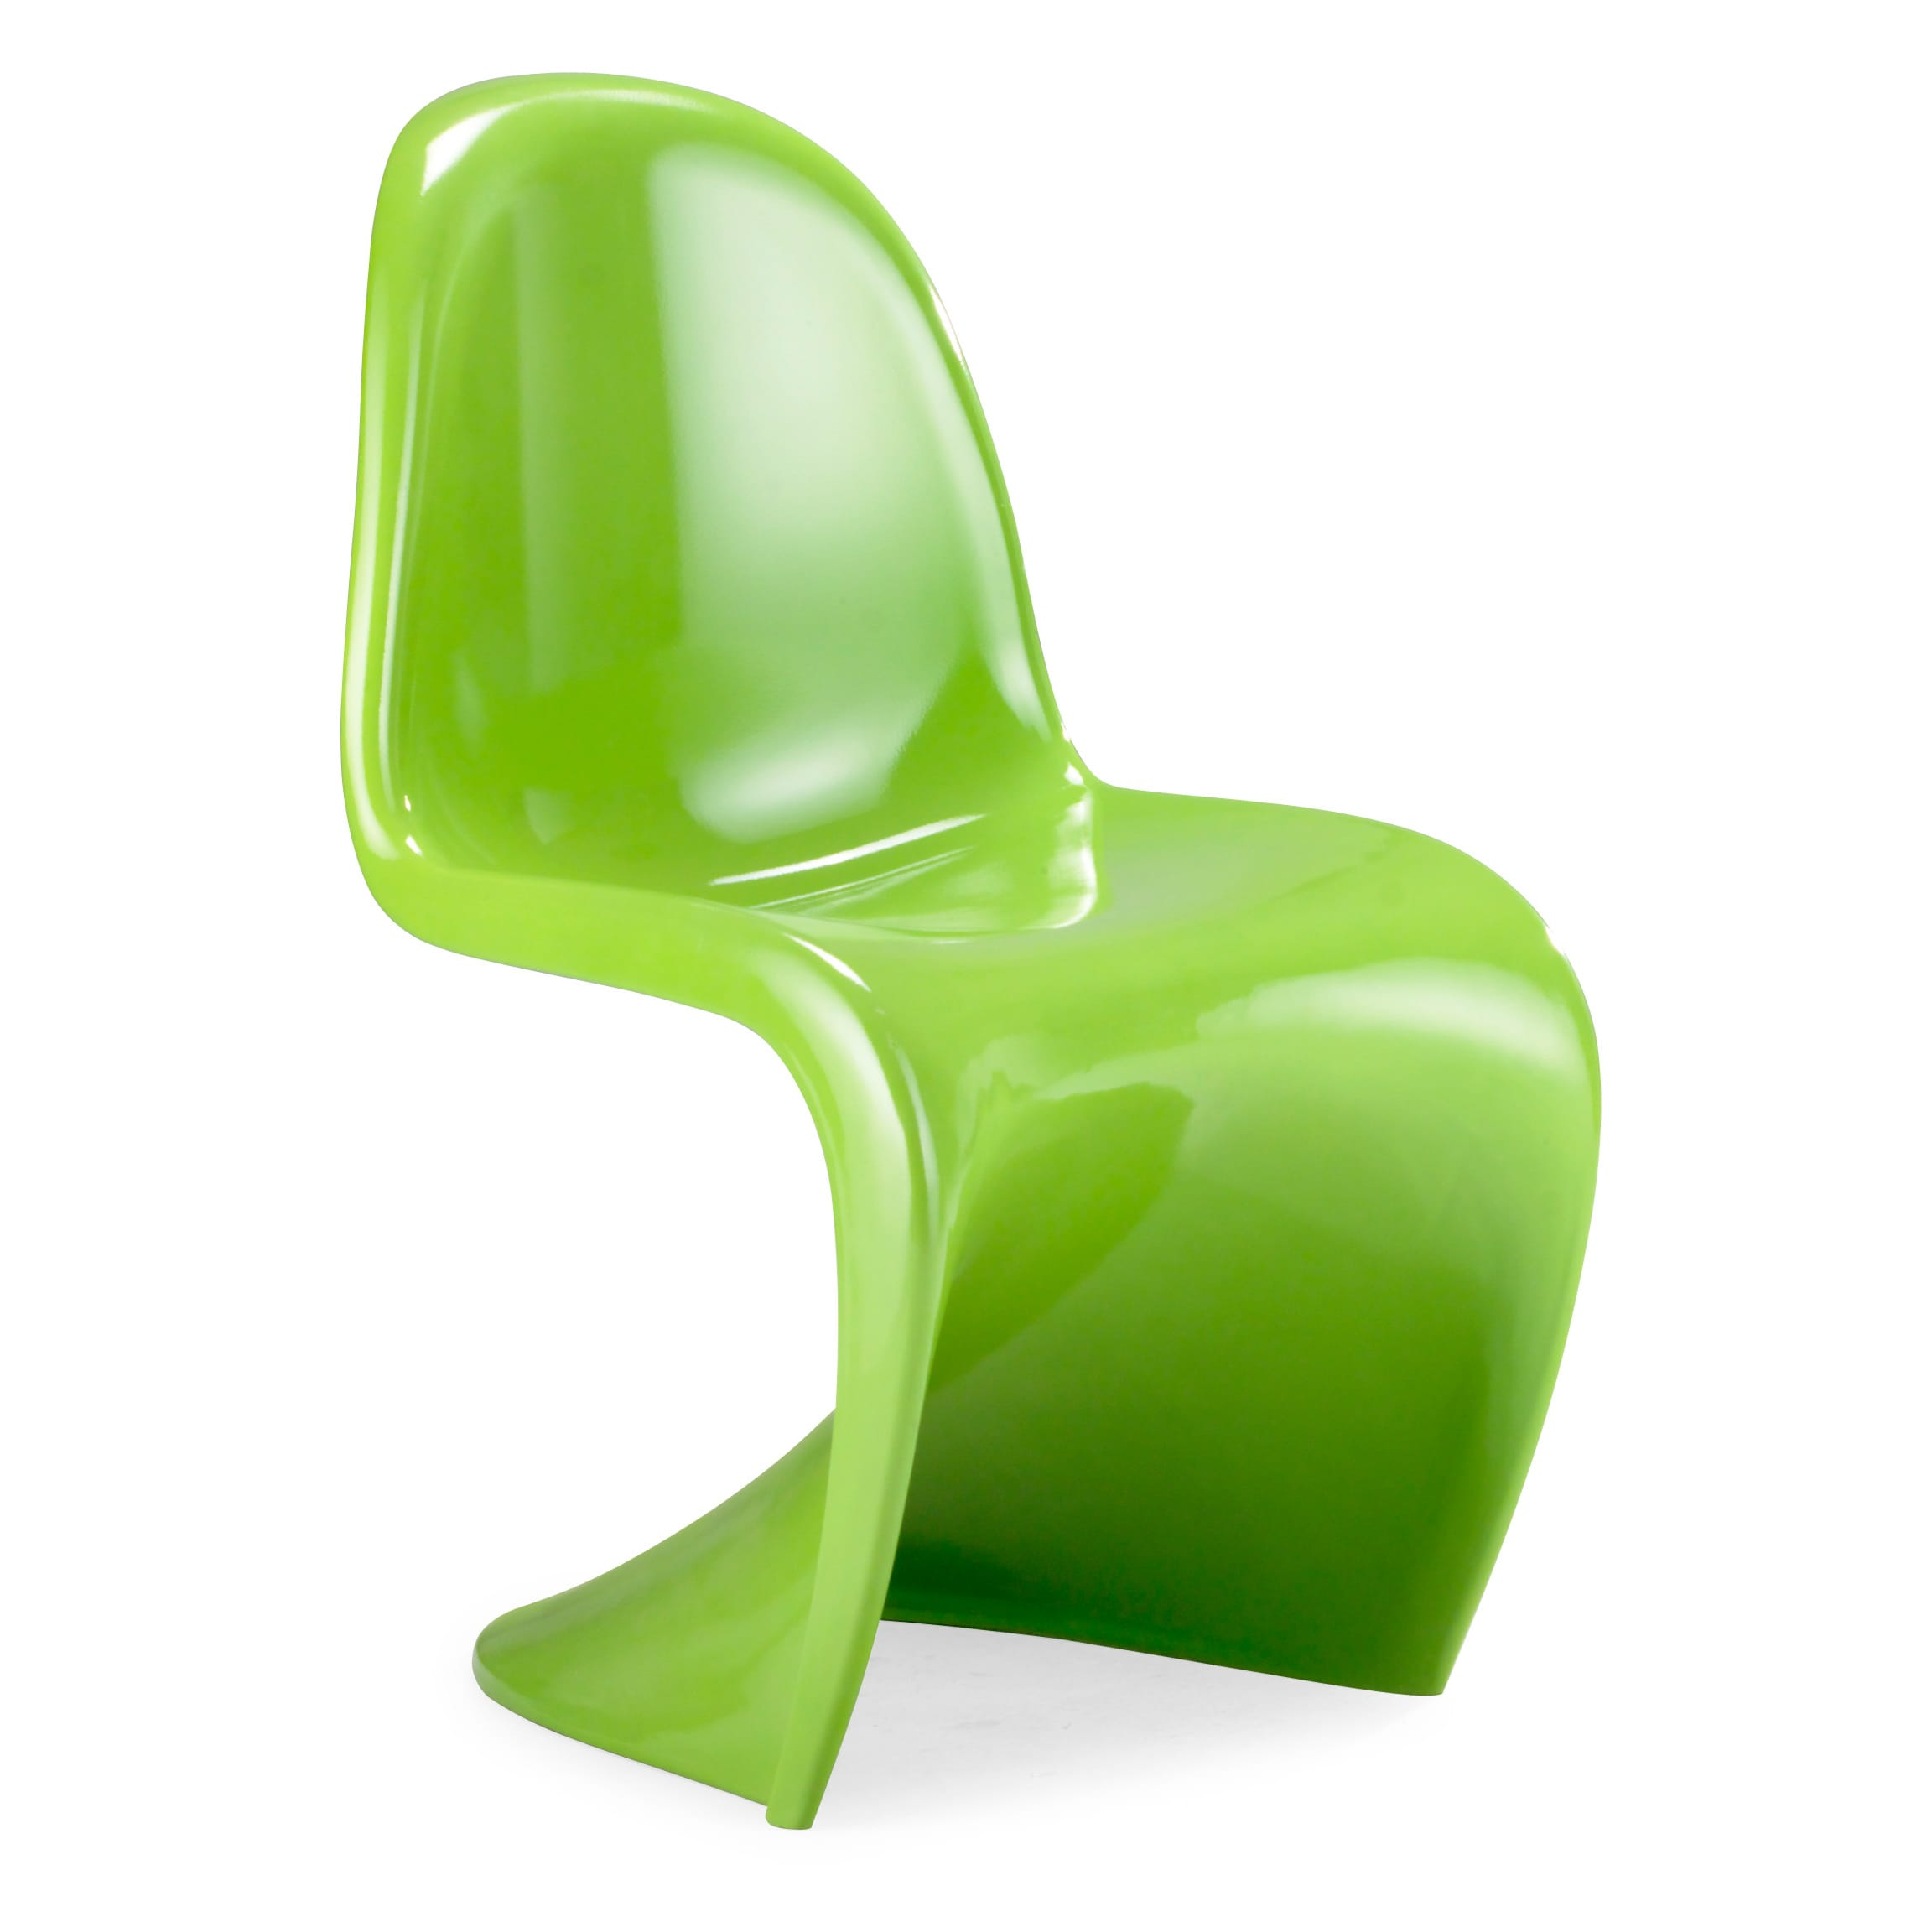 S Shaped Chair S Shaped Green Chair Set Of 2